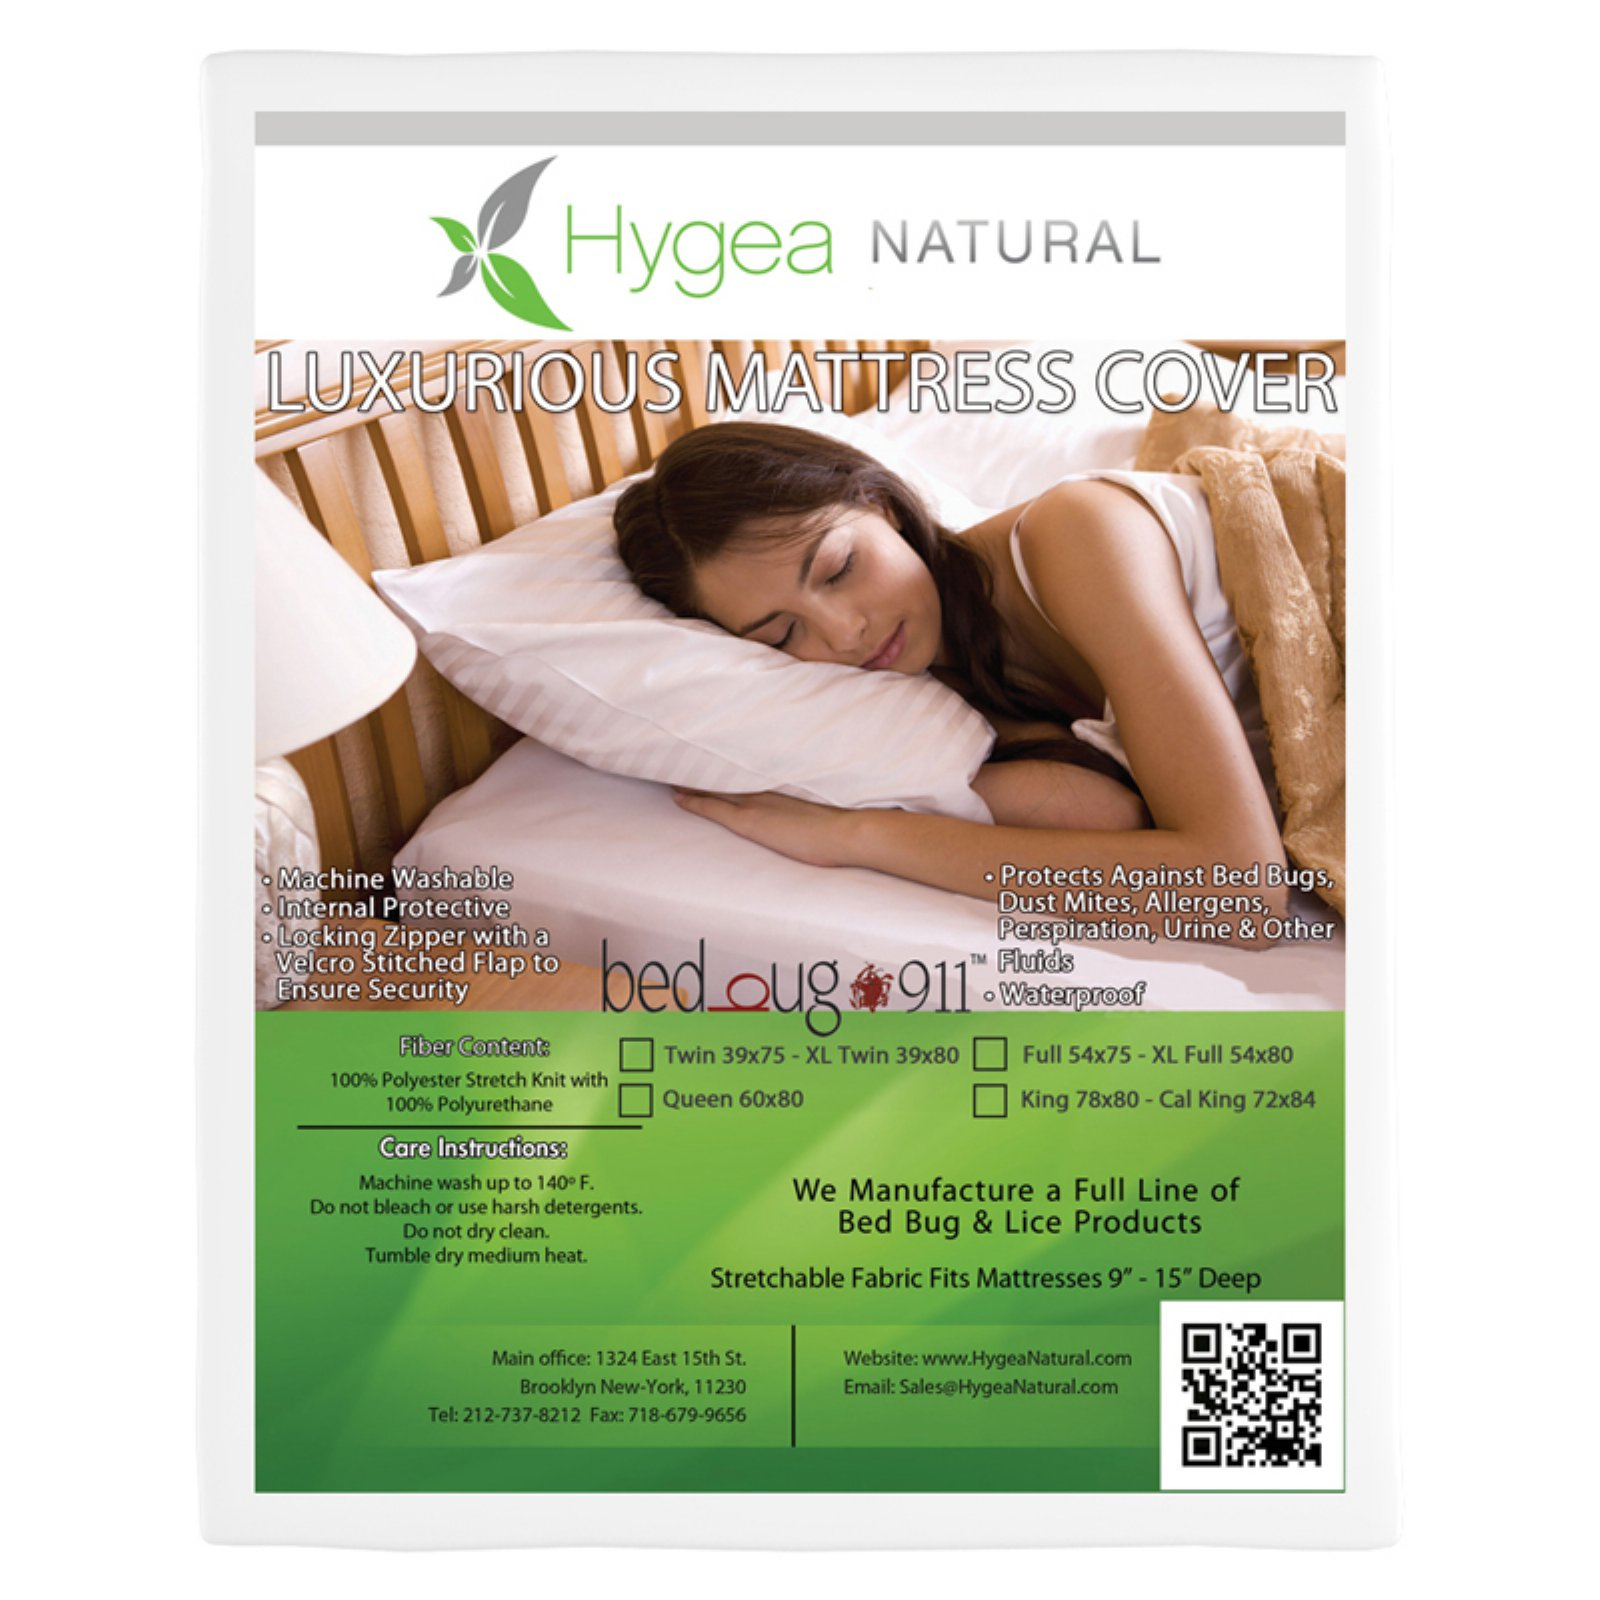 Bed Bug 911 Hygea Mattress Cover